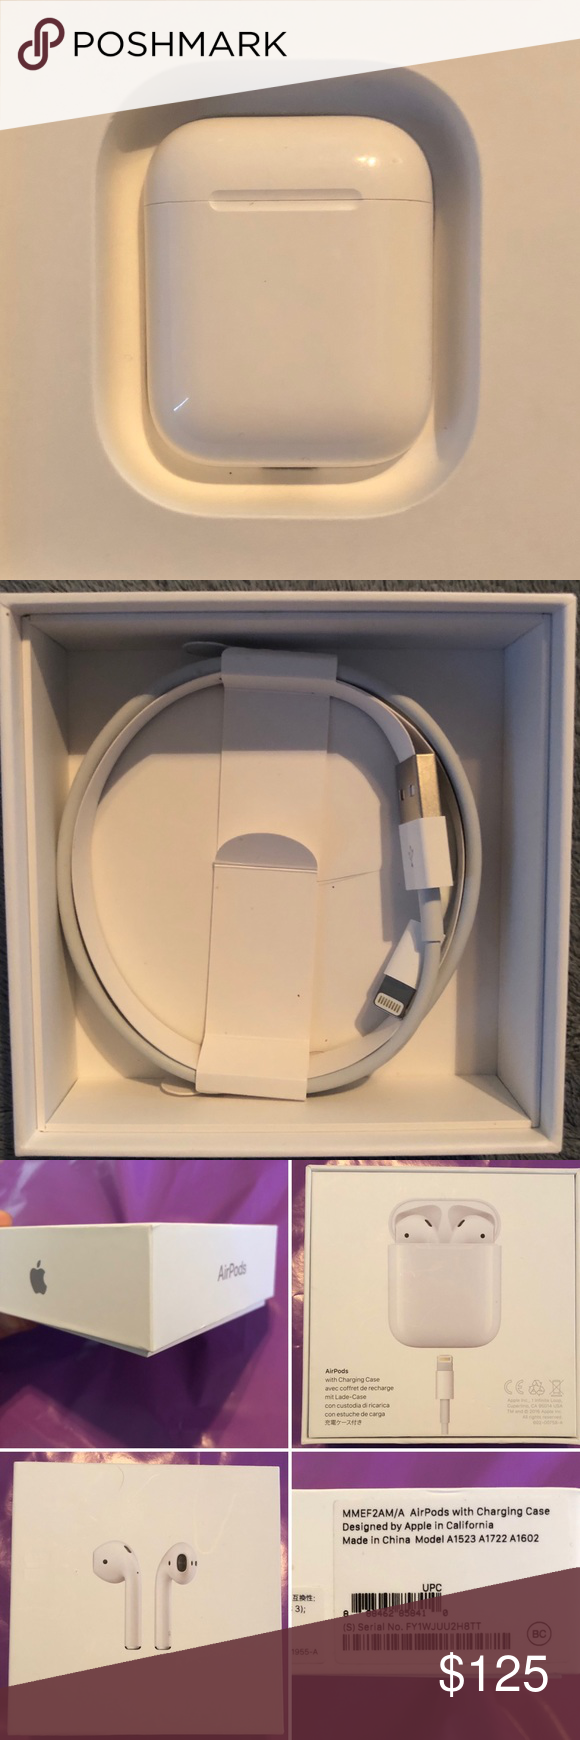 airpods 1st generation box